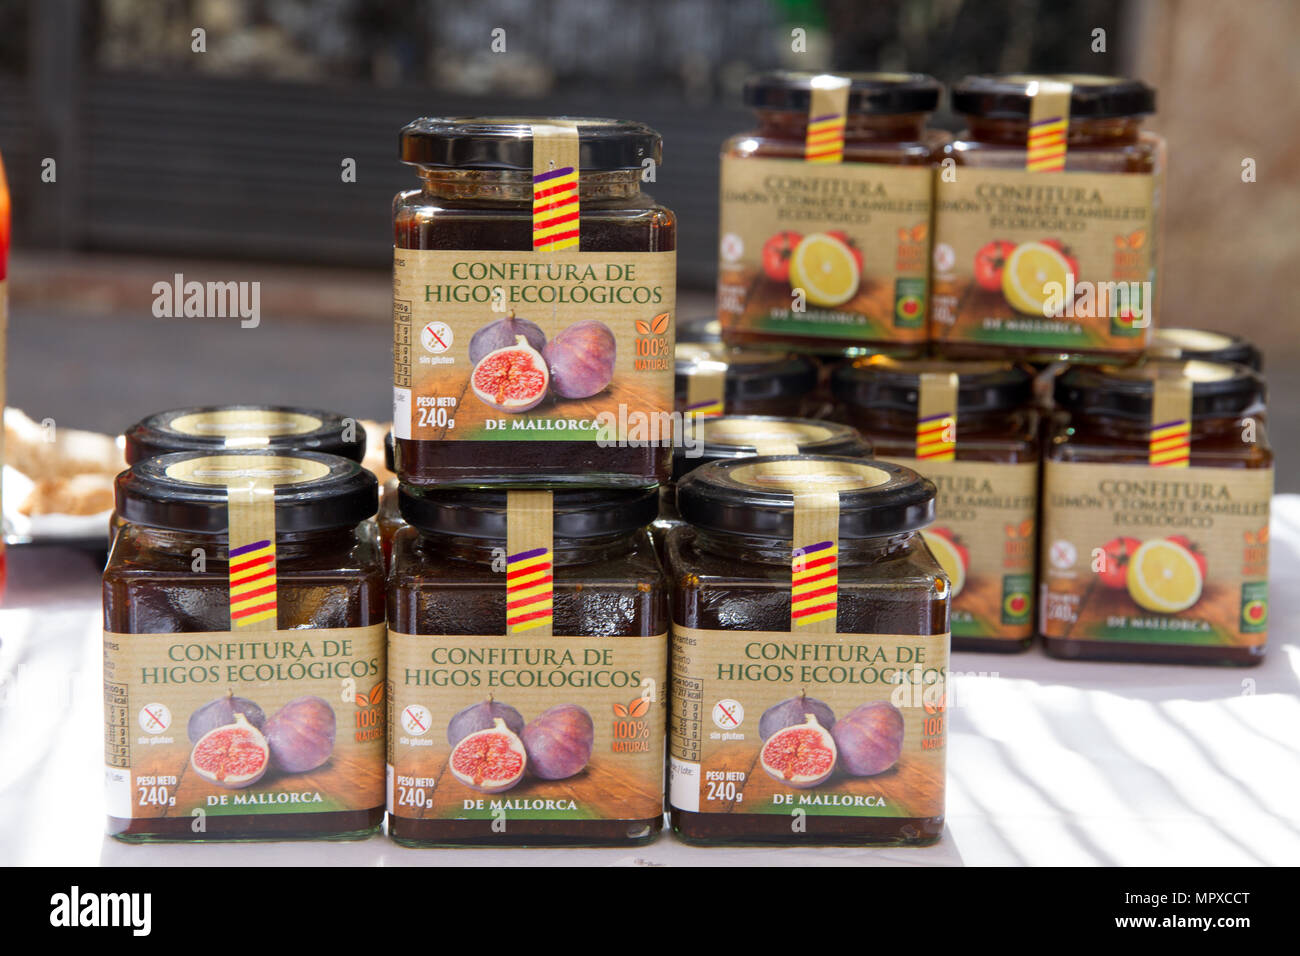 Ecological marmalade of figs food products, Mallorca Spain Stock Photo